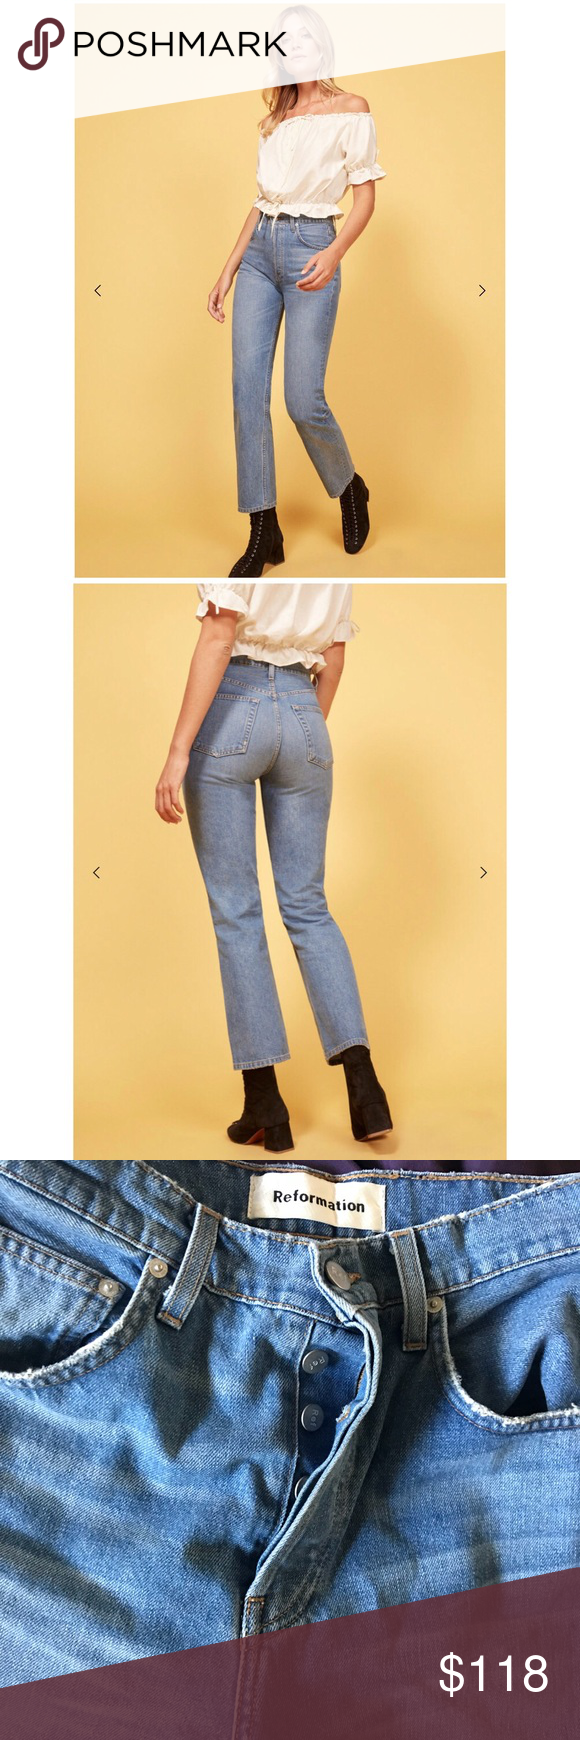 791220eefe4c Reformation Cynthia Relaxed Jean Reformation Cynthia Relaxed Jean. NEW  WITHOUT TAGS! These babies are